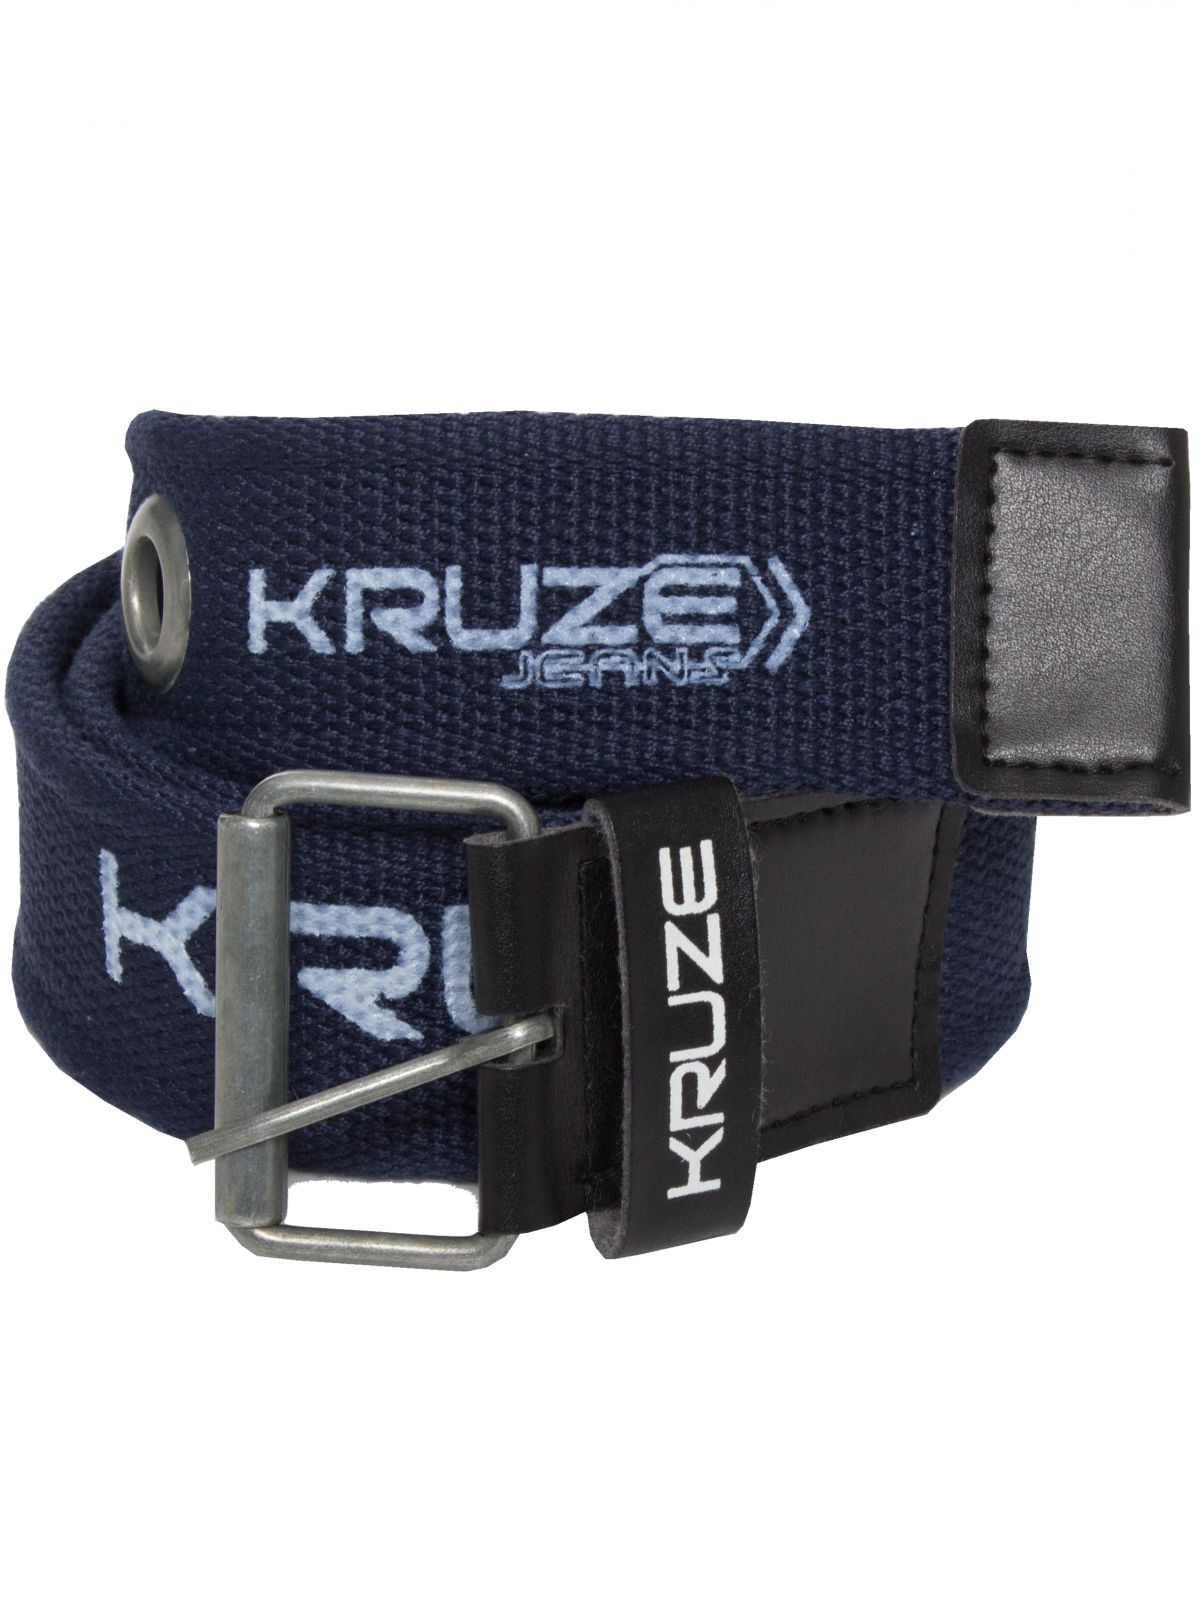 Accessories | Kruze Designer New Mens Canvas Belt For Jeans Big Tall King Sizes